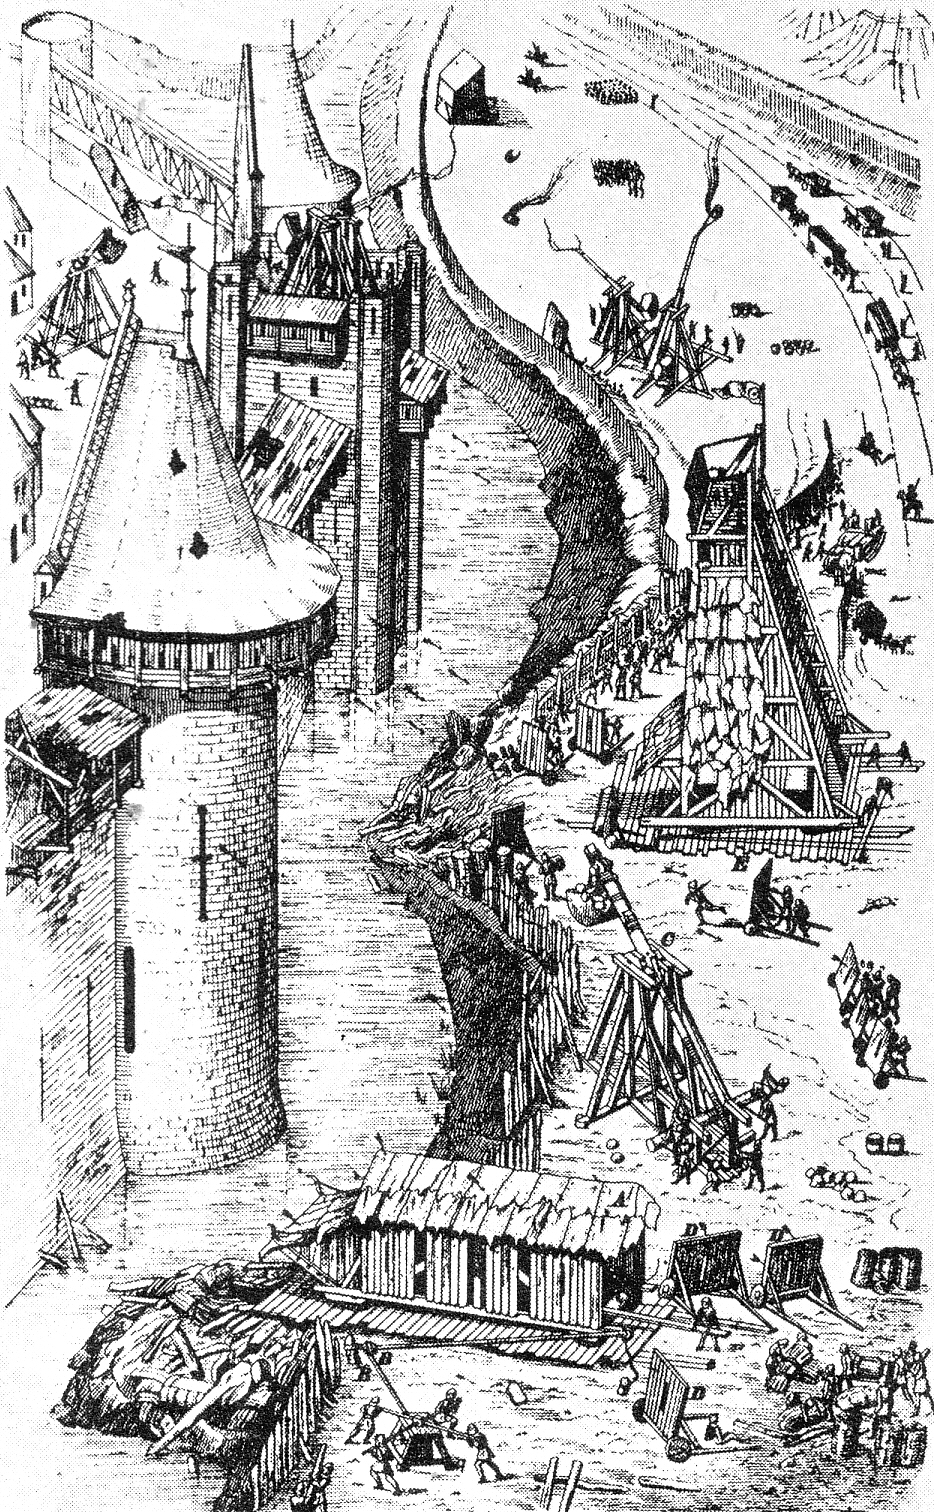 Contemporary illustration of a medieval castle siege.